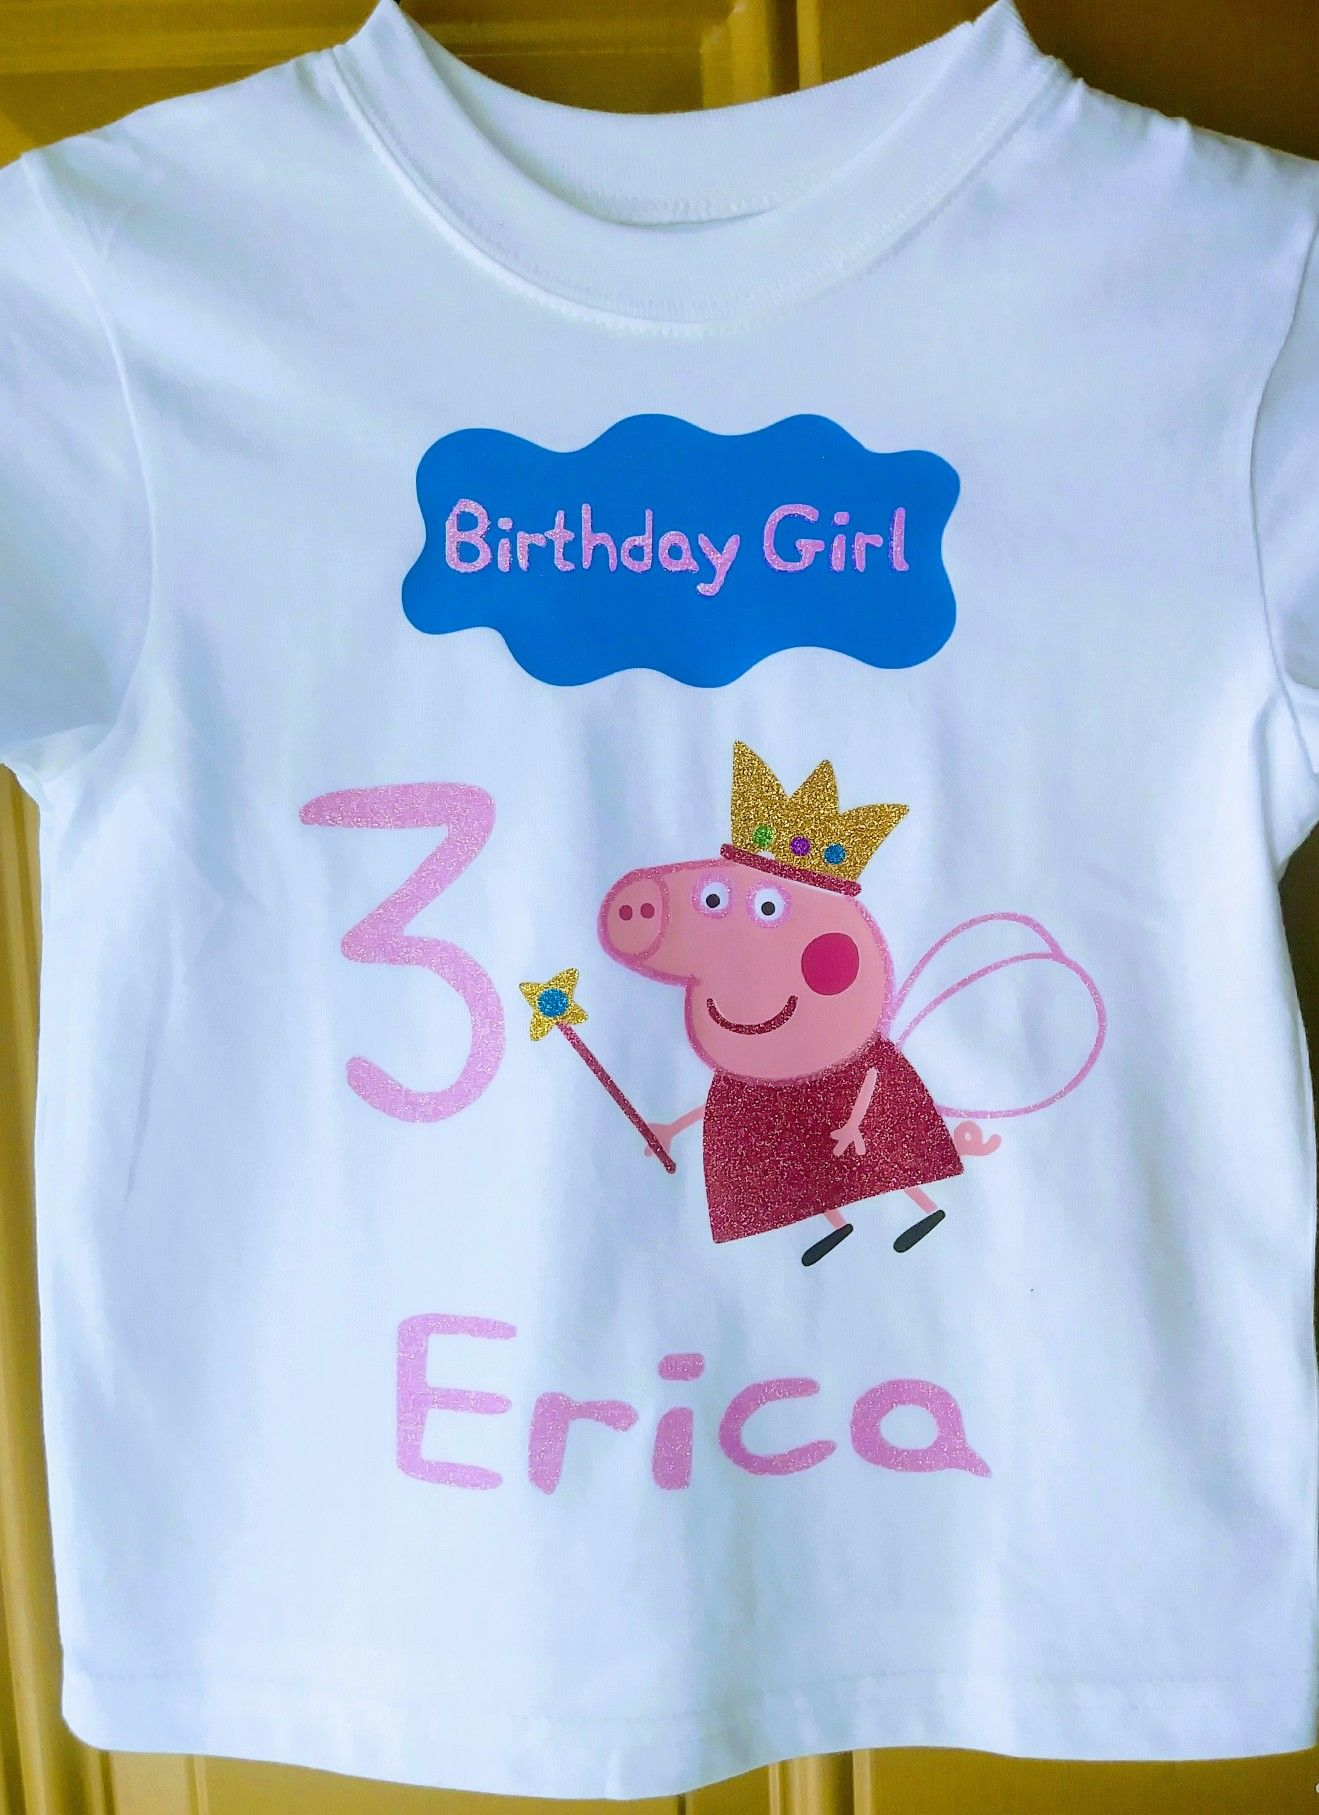 c8d5a43cd Peppa Pig shirt i made for a sweet little girl | My designs | Peppa ...